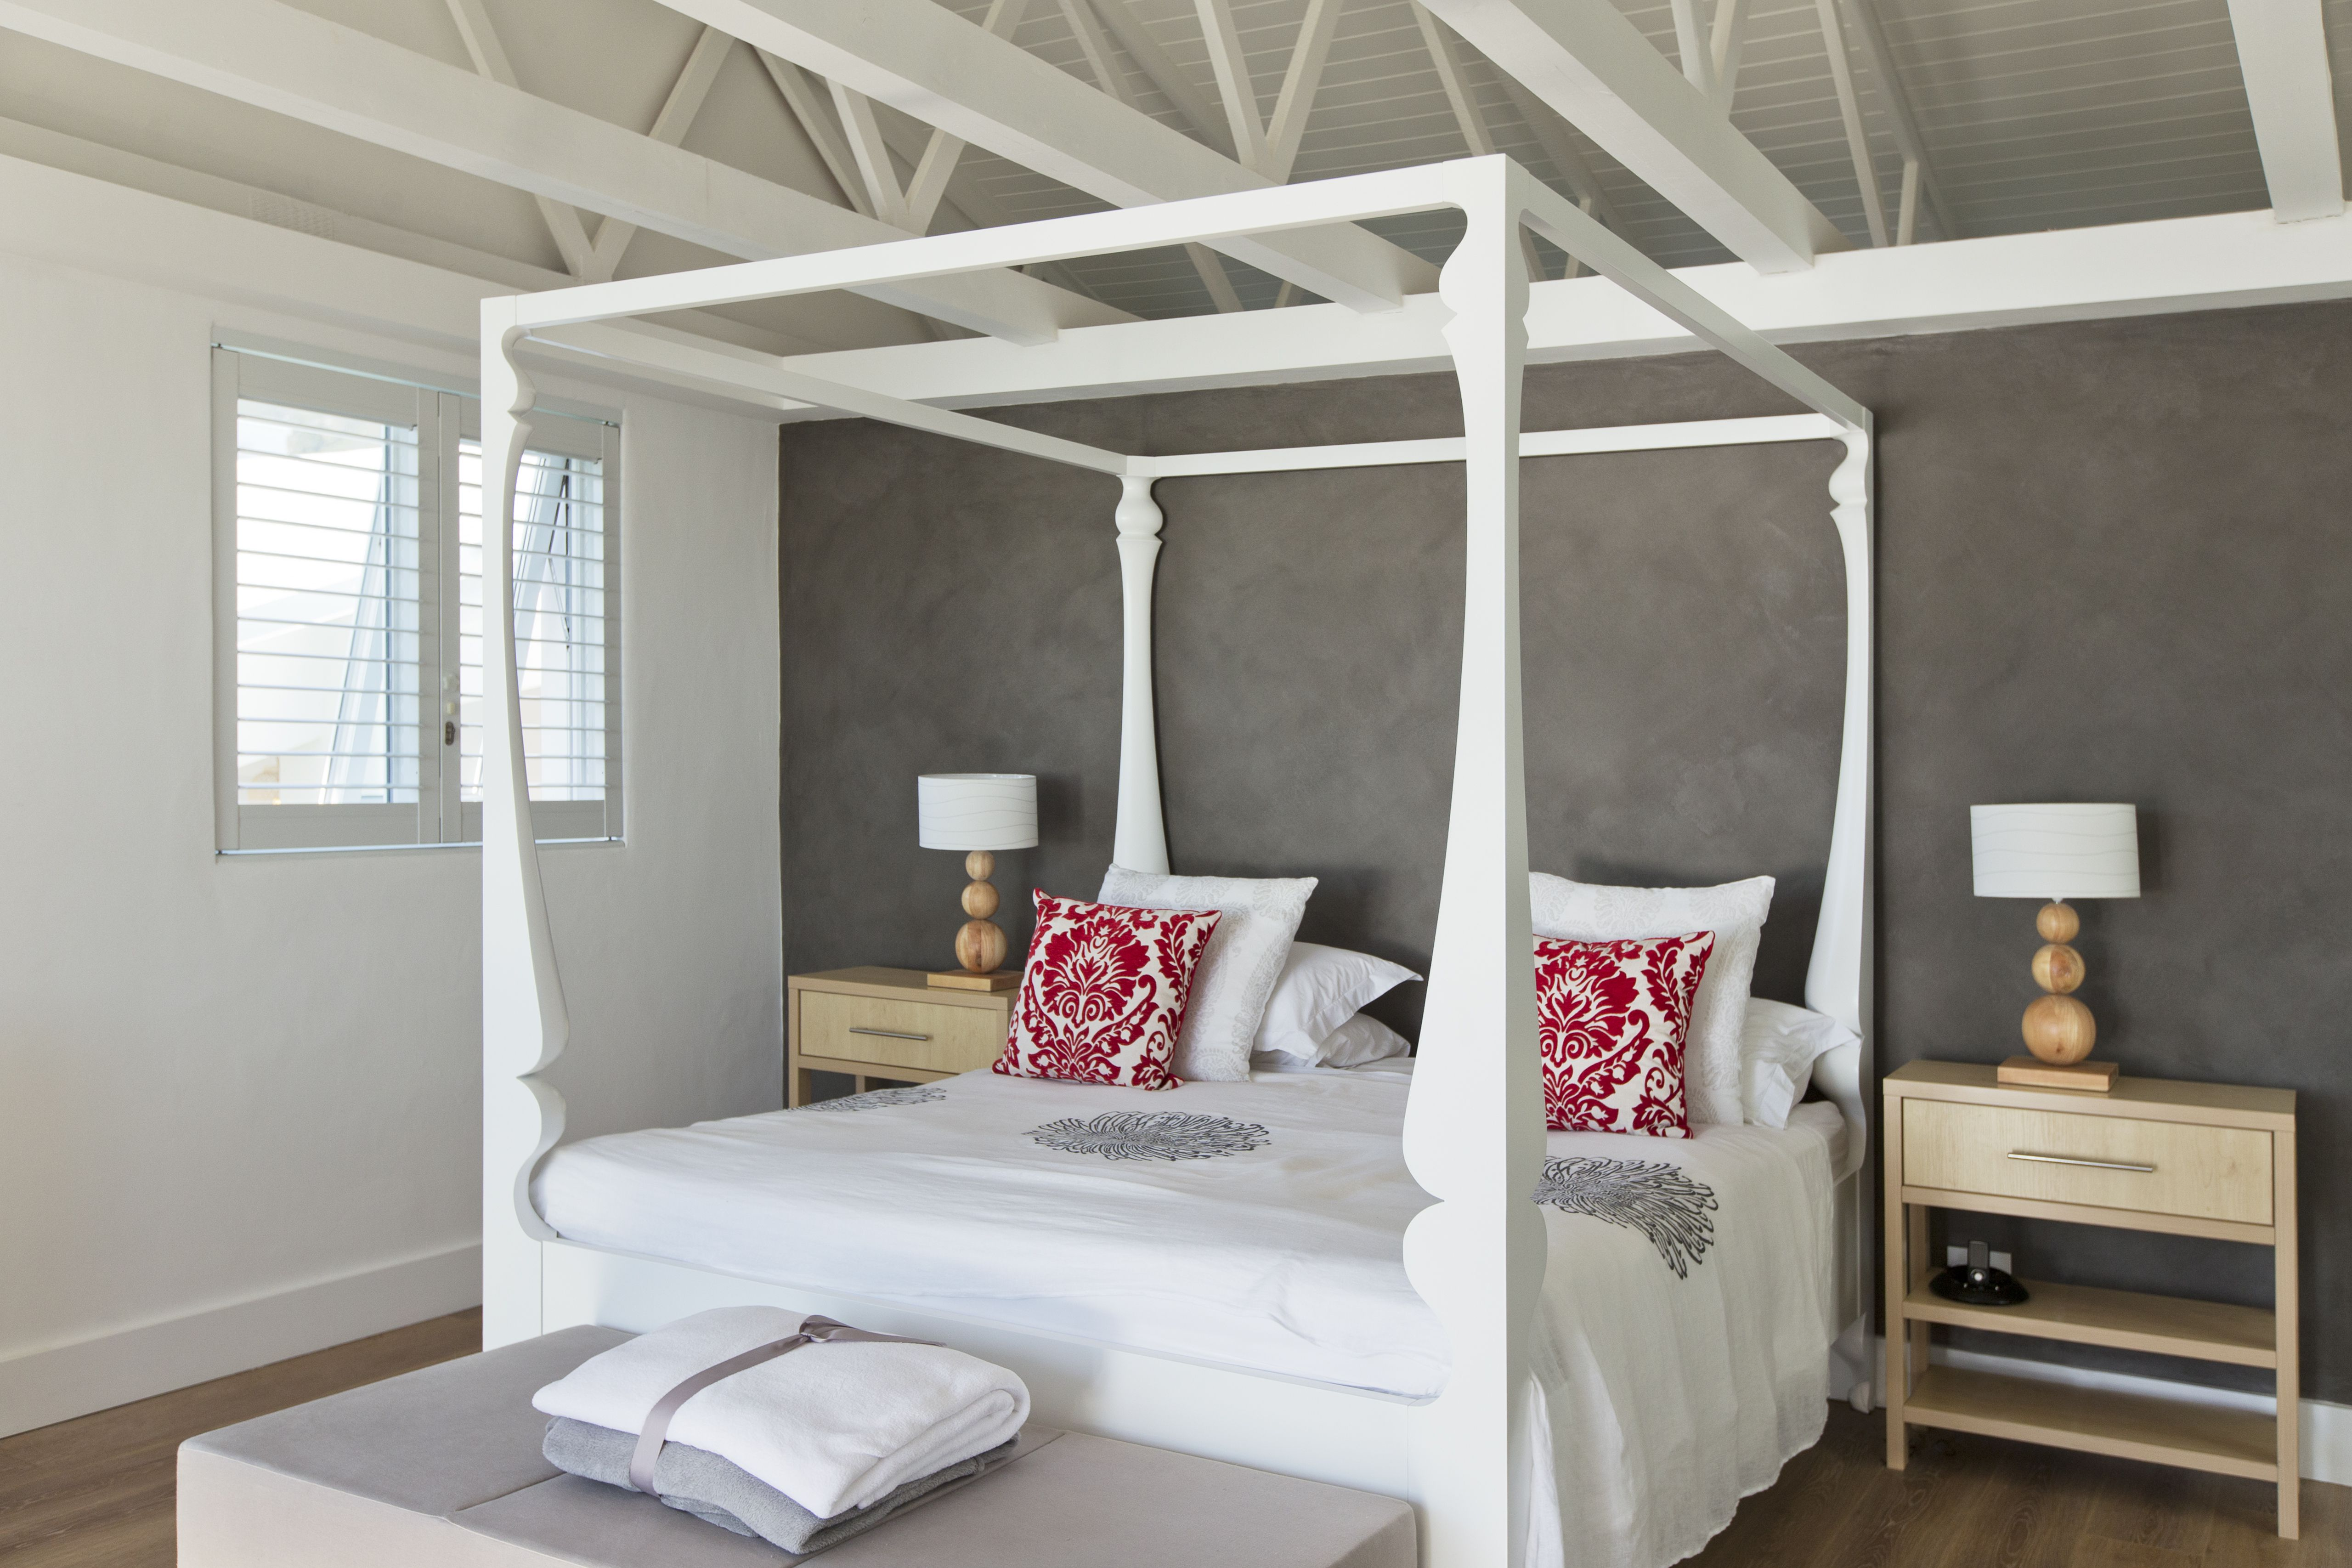 Large Room Design - Top Tips for Decorating